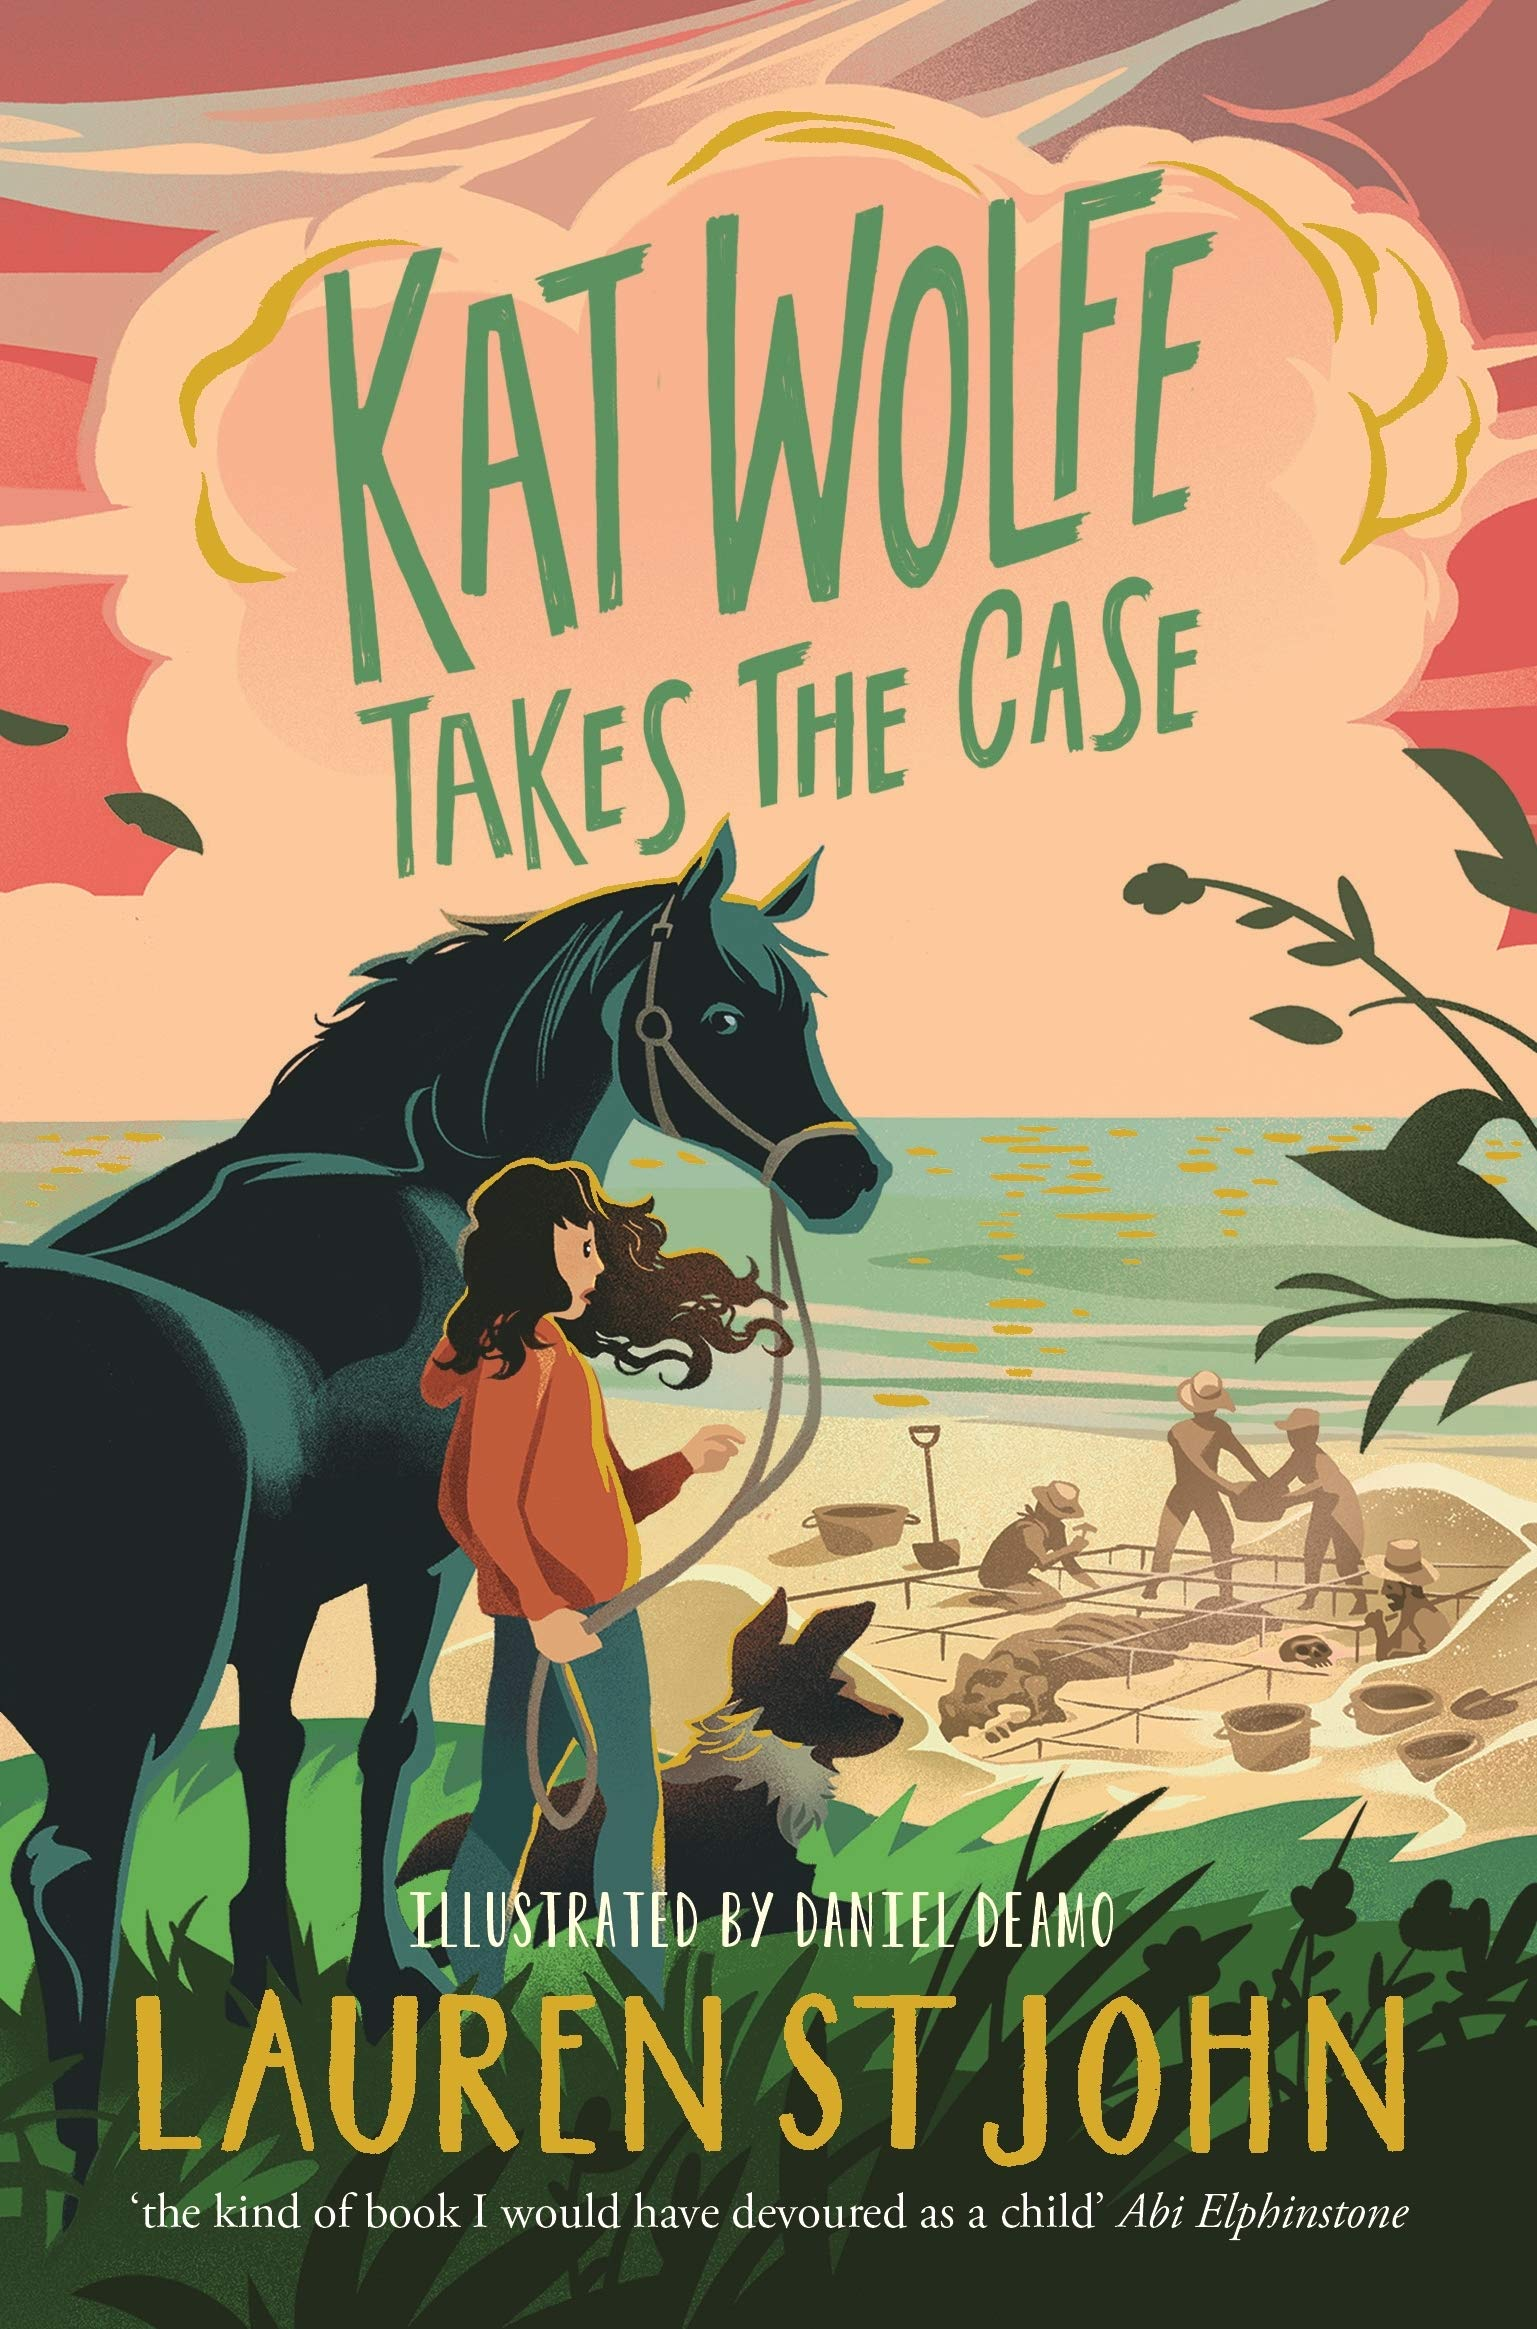 Kat Wolfe Takes the Case Book Cover